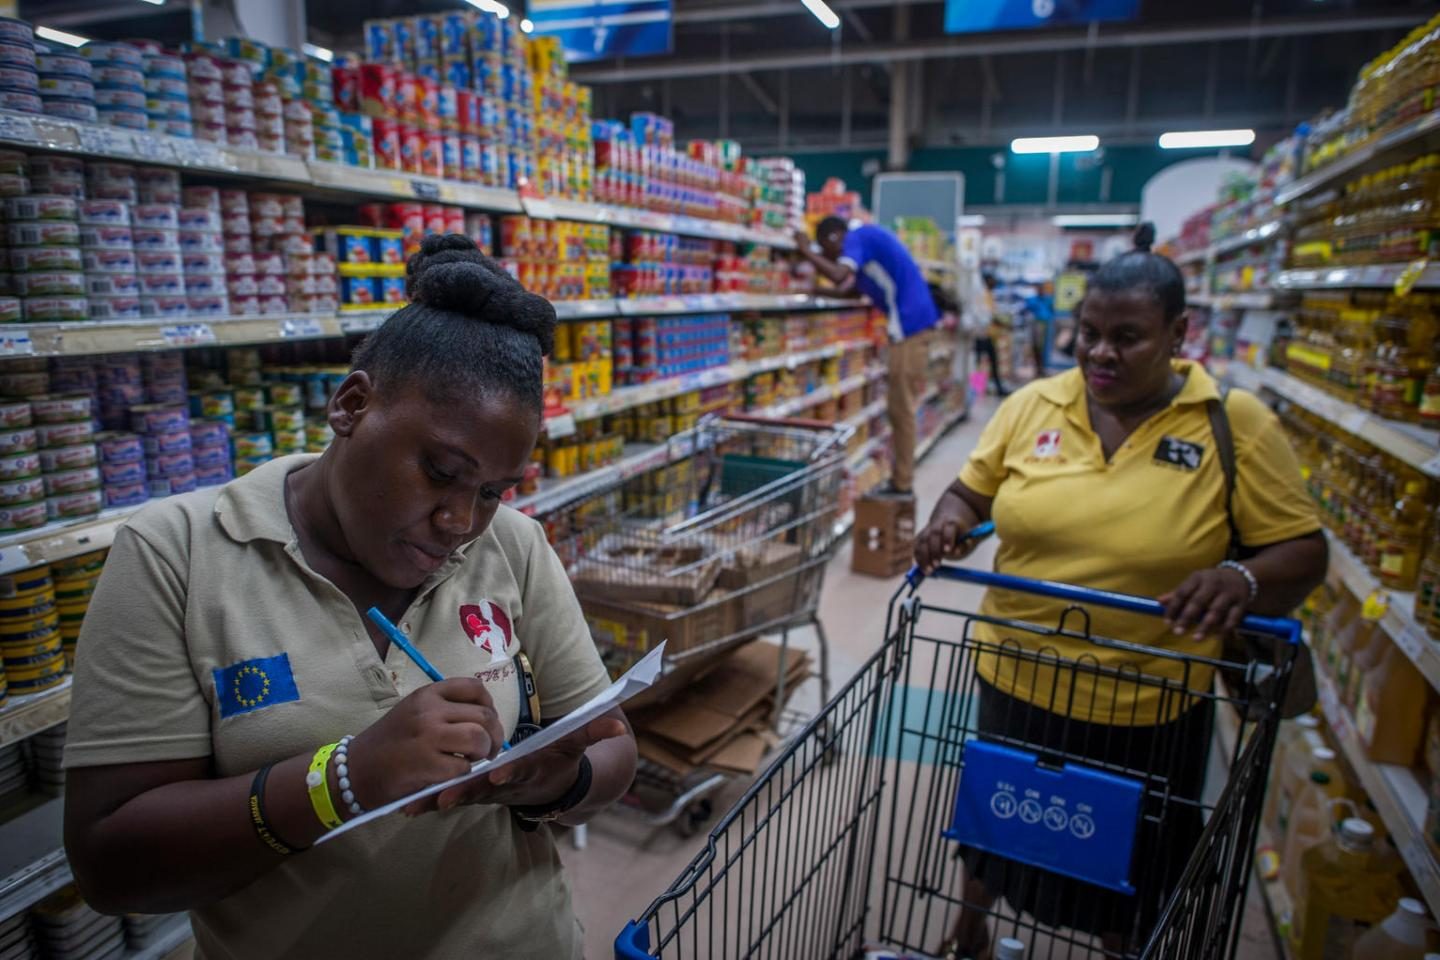 Mentor Mom Monique shops in the local supermarket in Jamaica